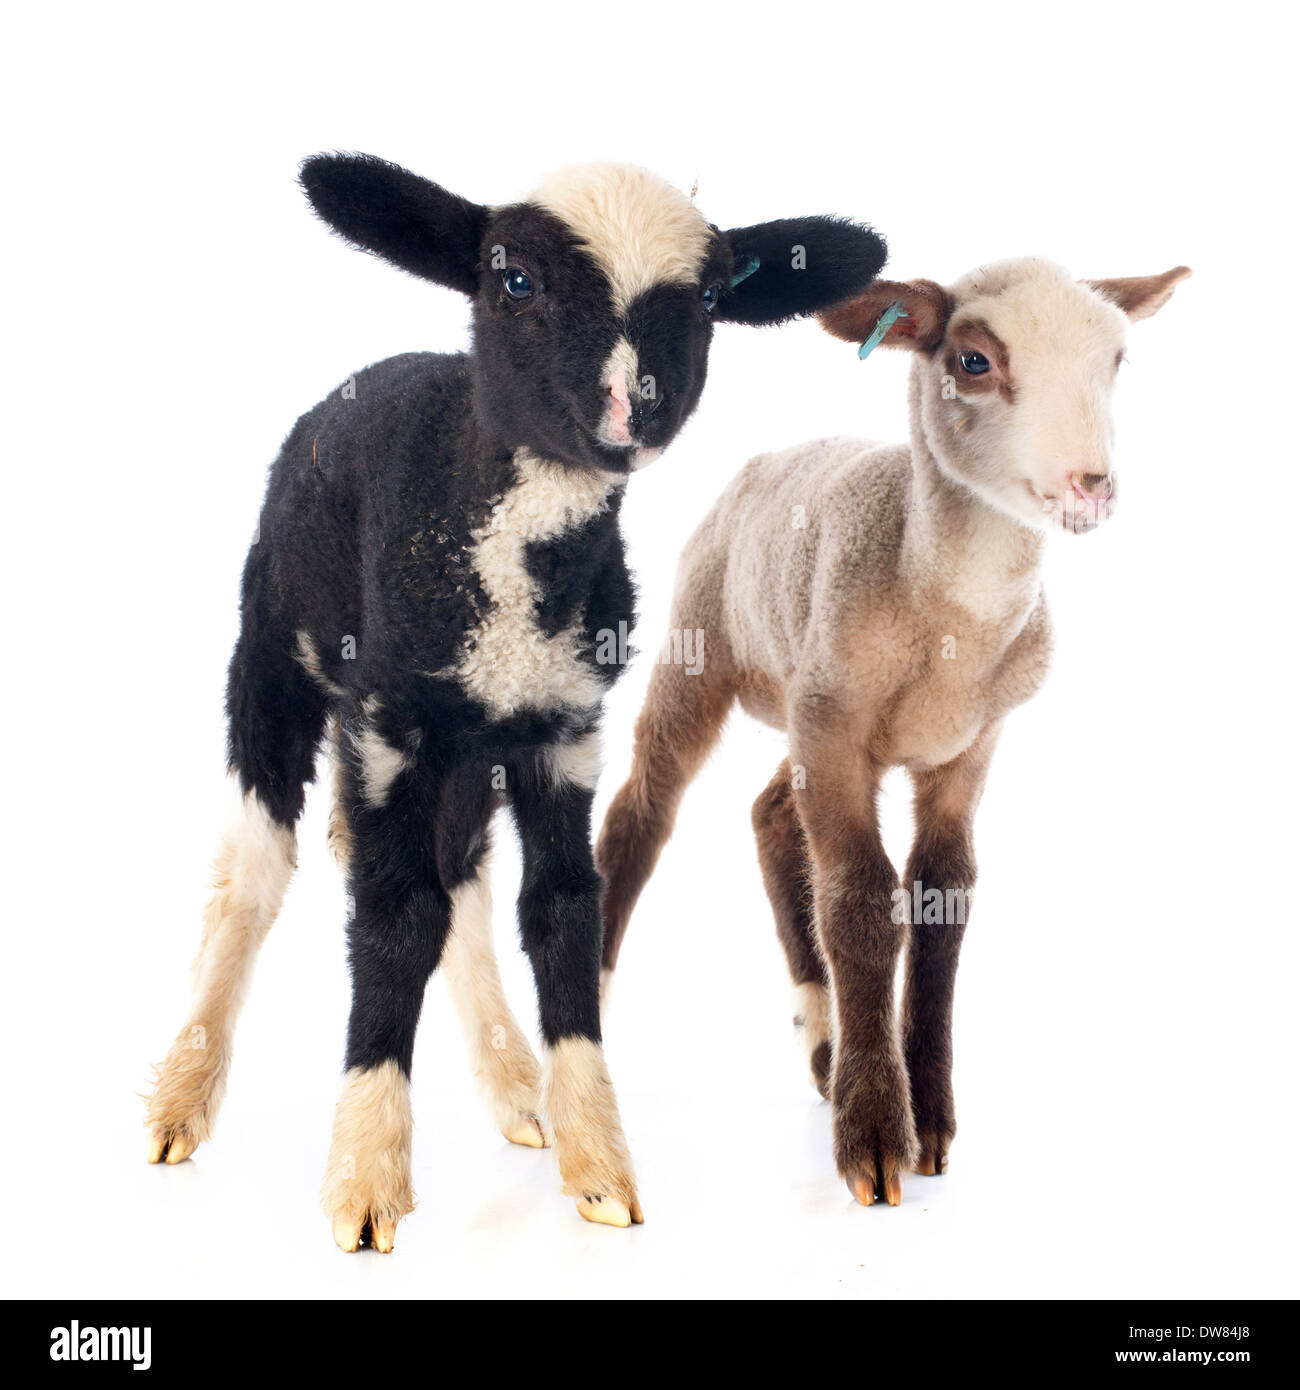 young lambs in front of white background - Stock Image